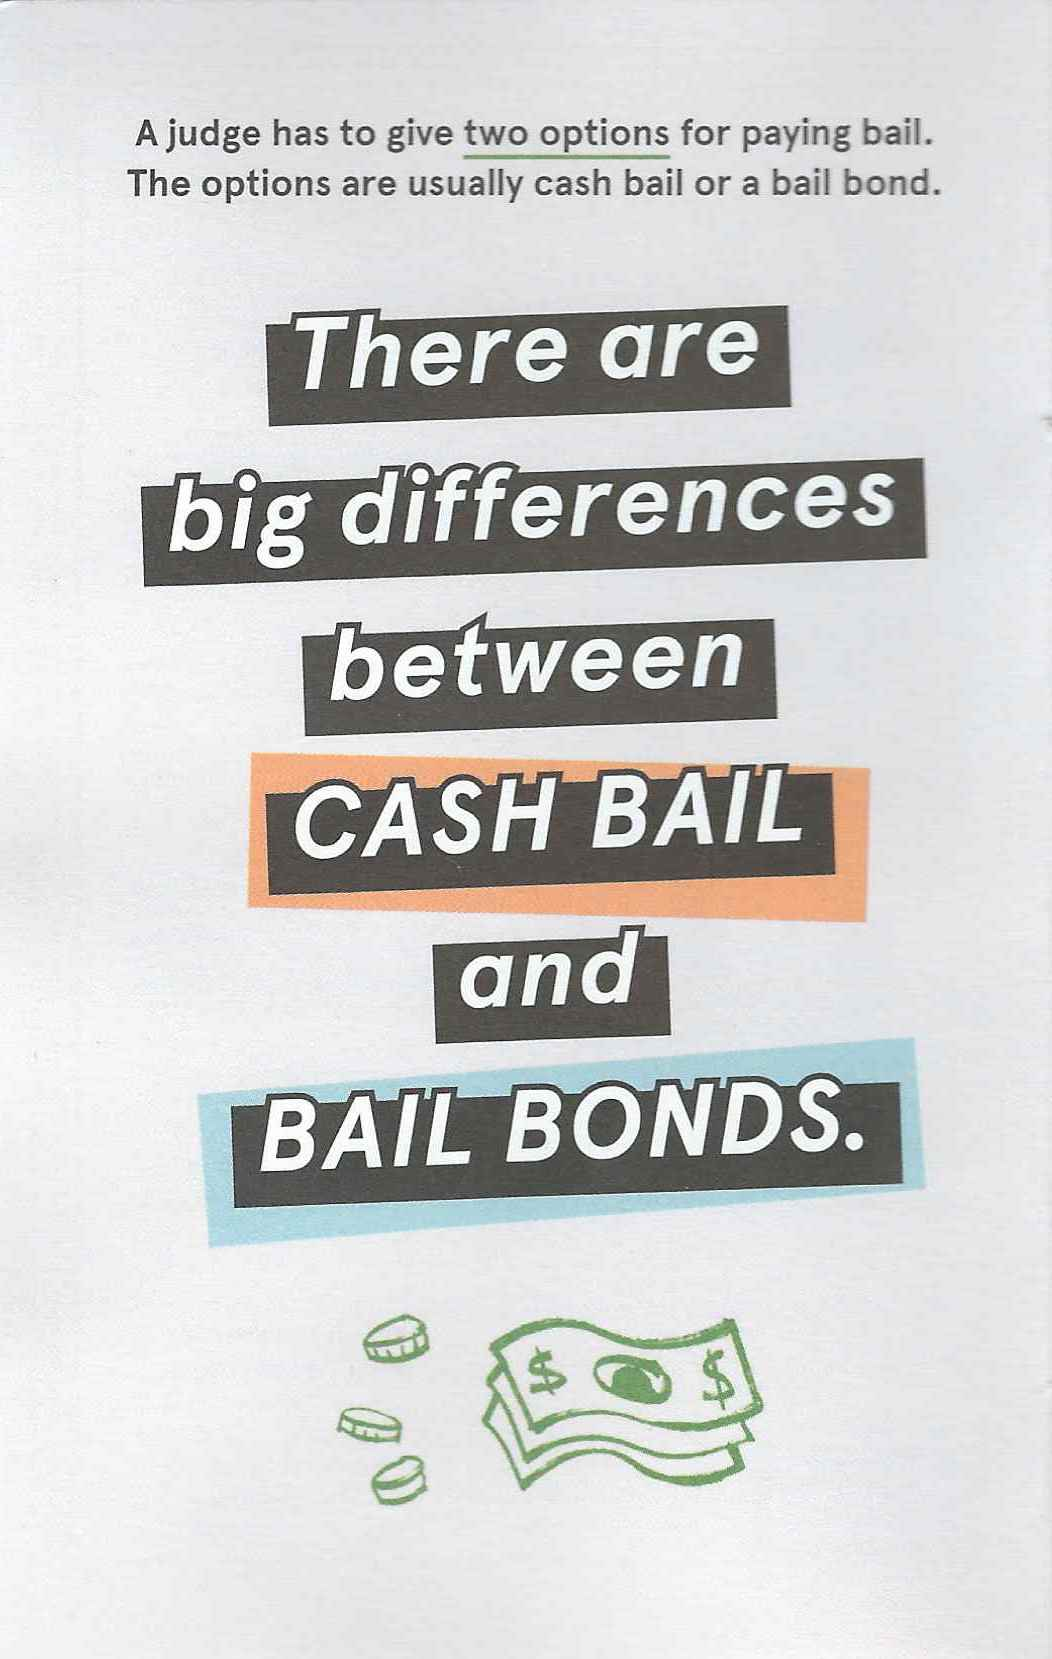 Flier announcing differences between bail and bond